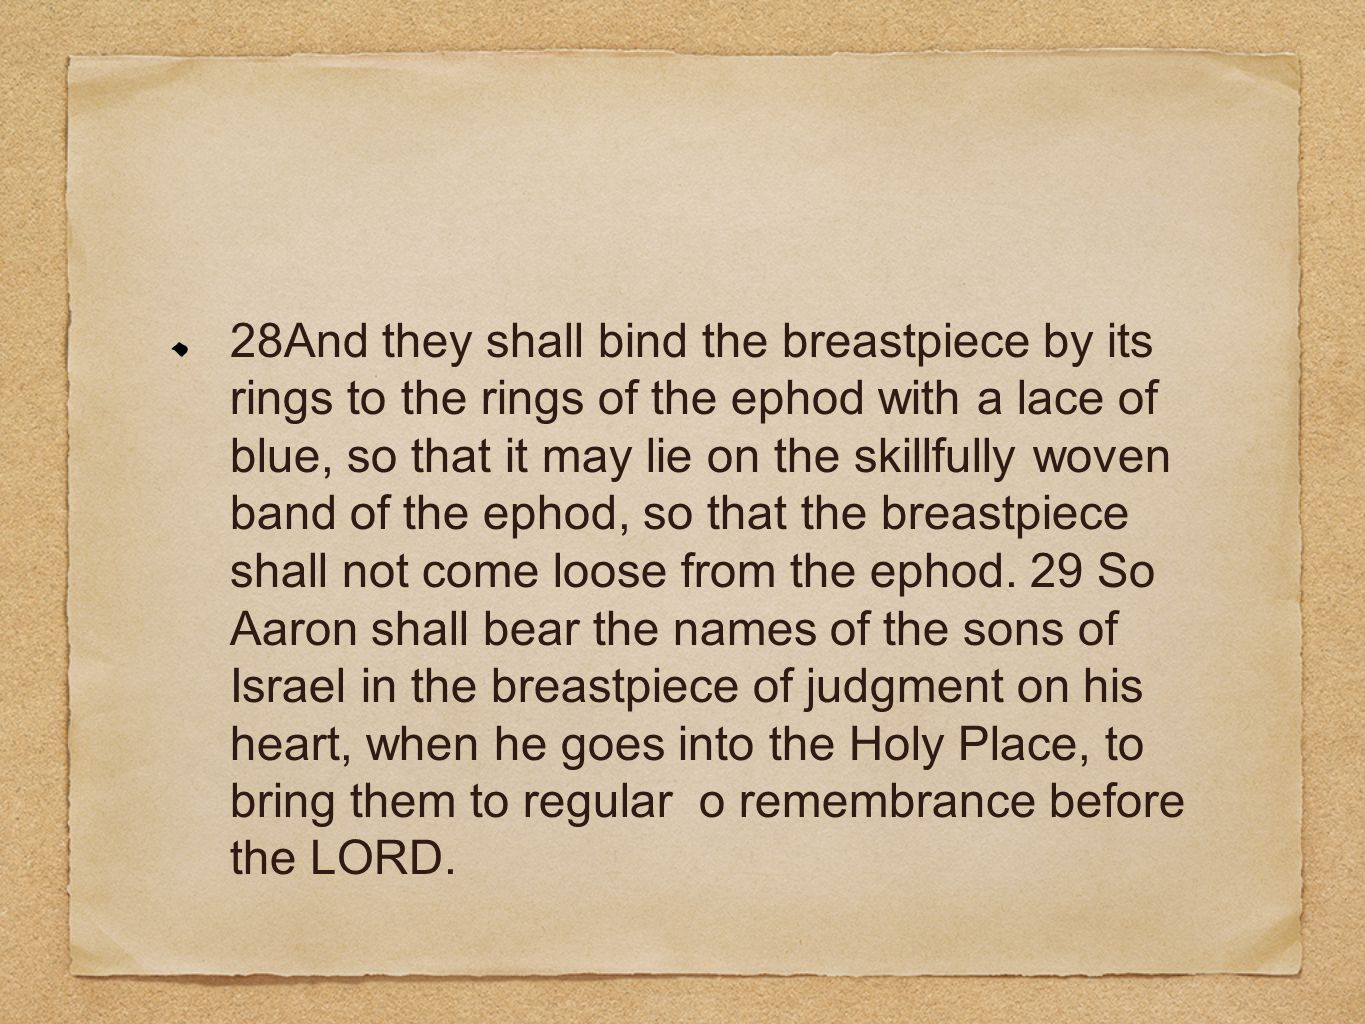 28And they shall bind the breastpiece by its rings to the rings of the ephod with a lace of blue, so that it may lie on the skillfully woven band of t